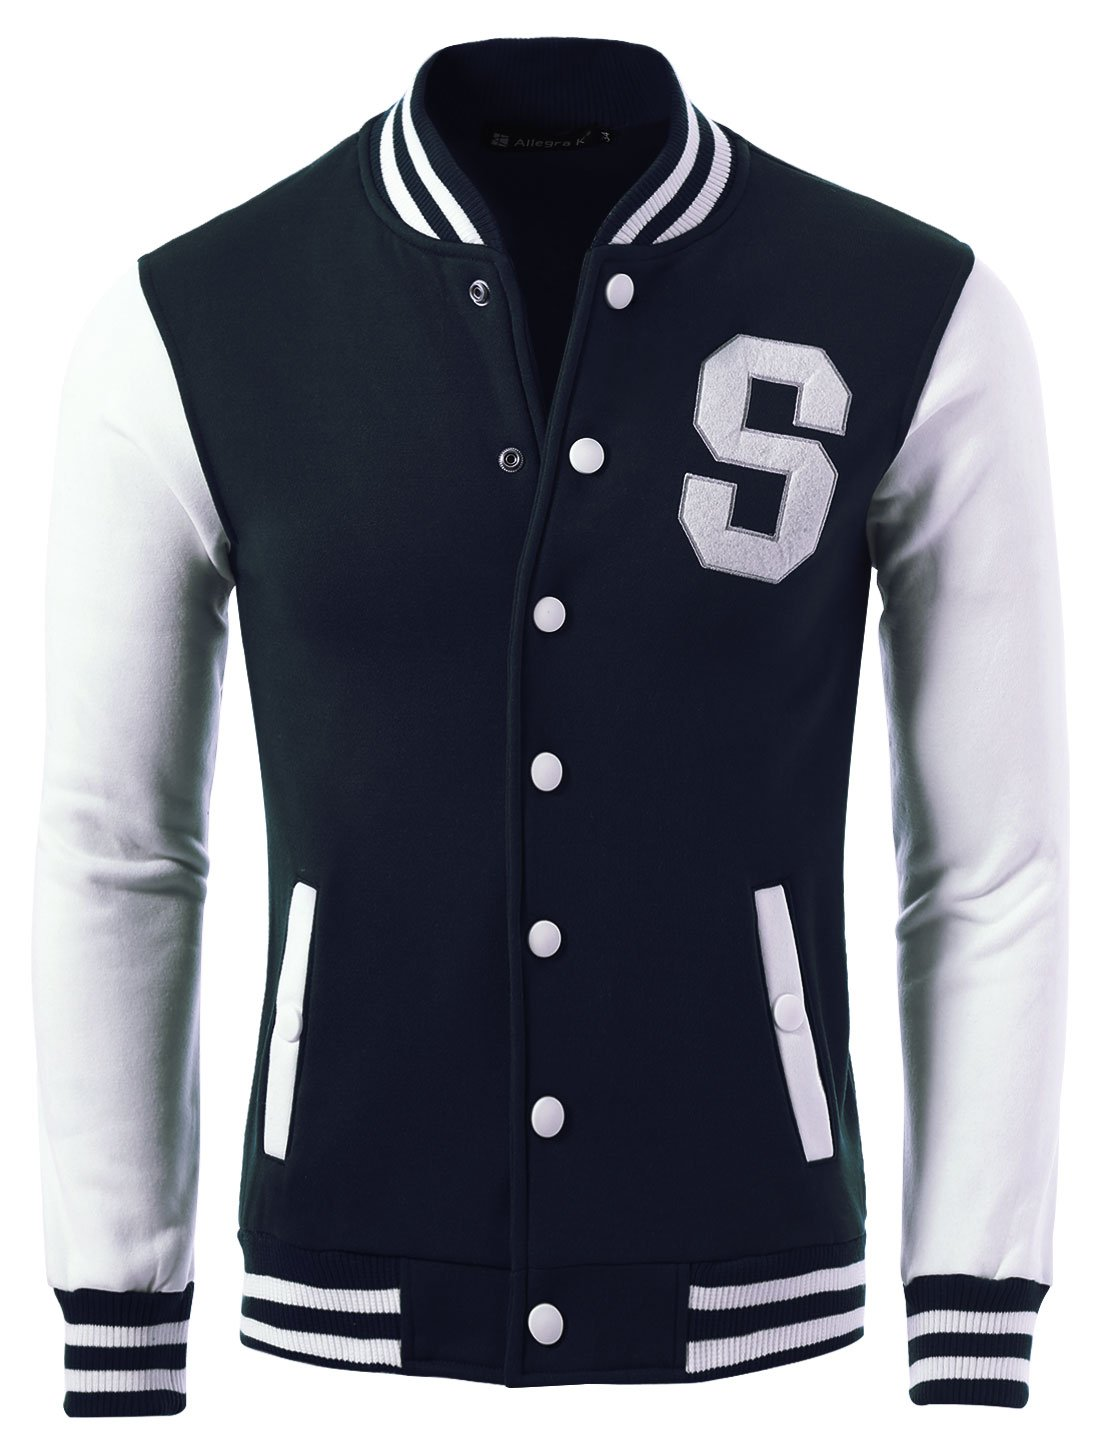 Allegra K Men Letter Pattern Snap Buttons Casual Baseball Jacket Navy Blue S by uxcell